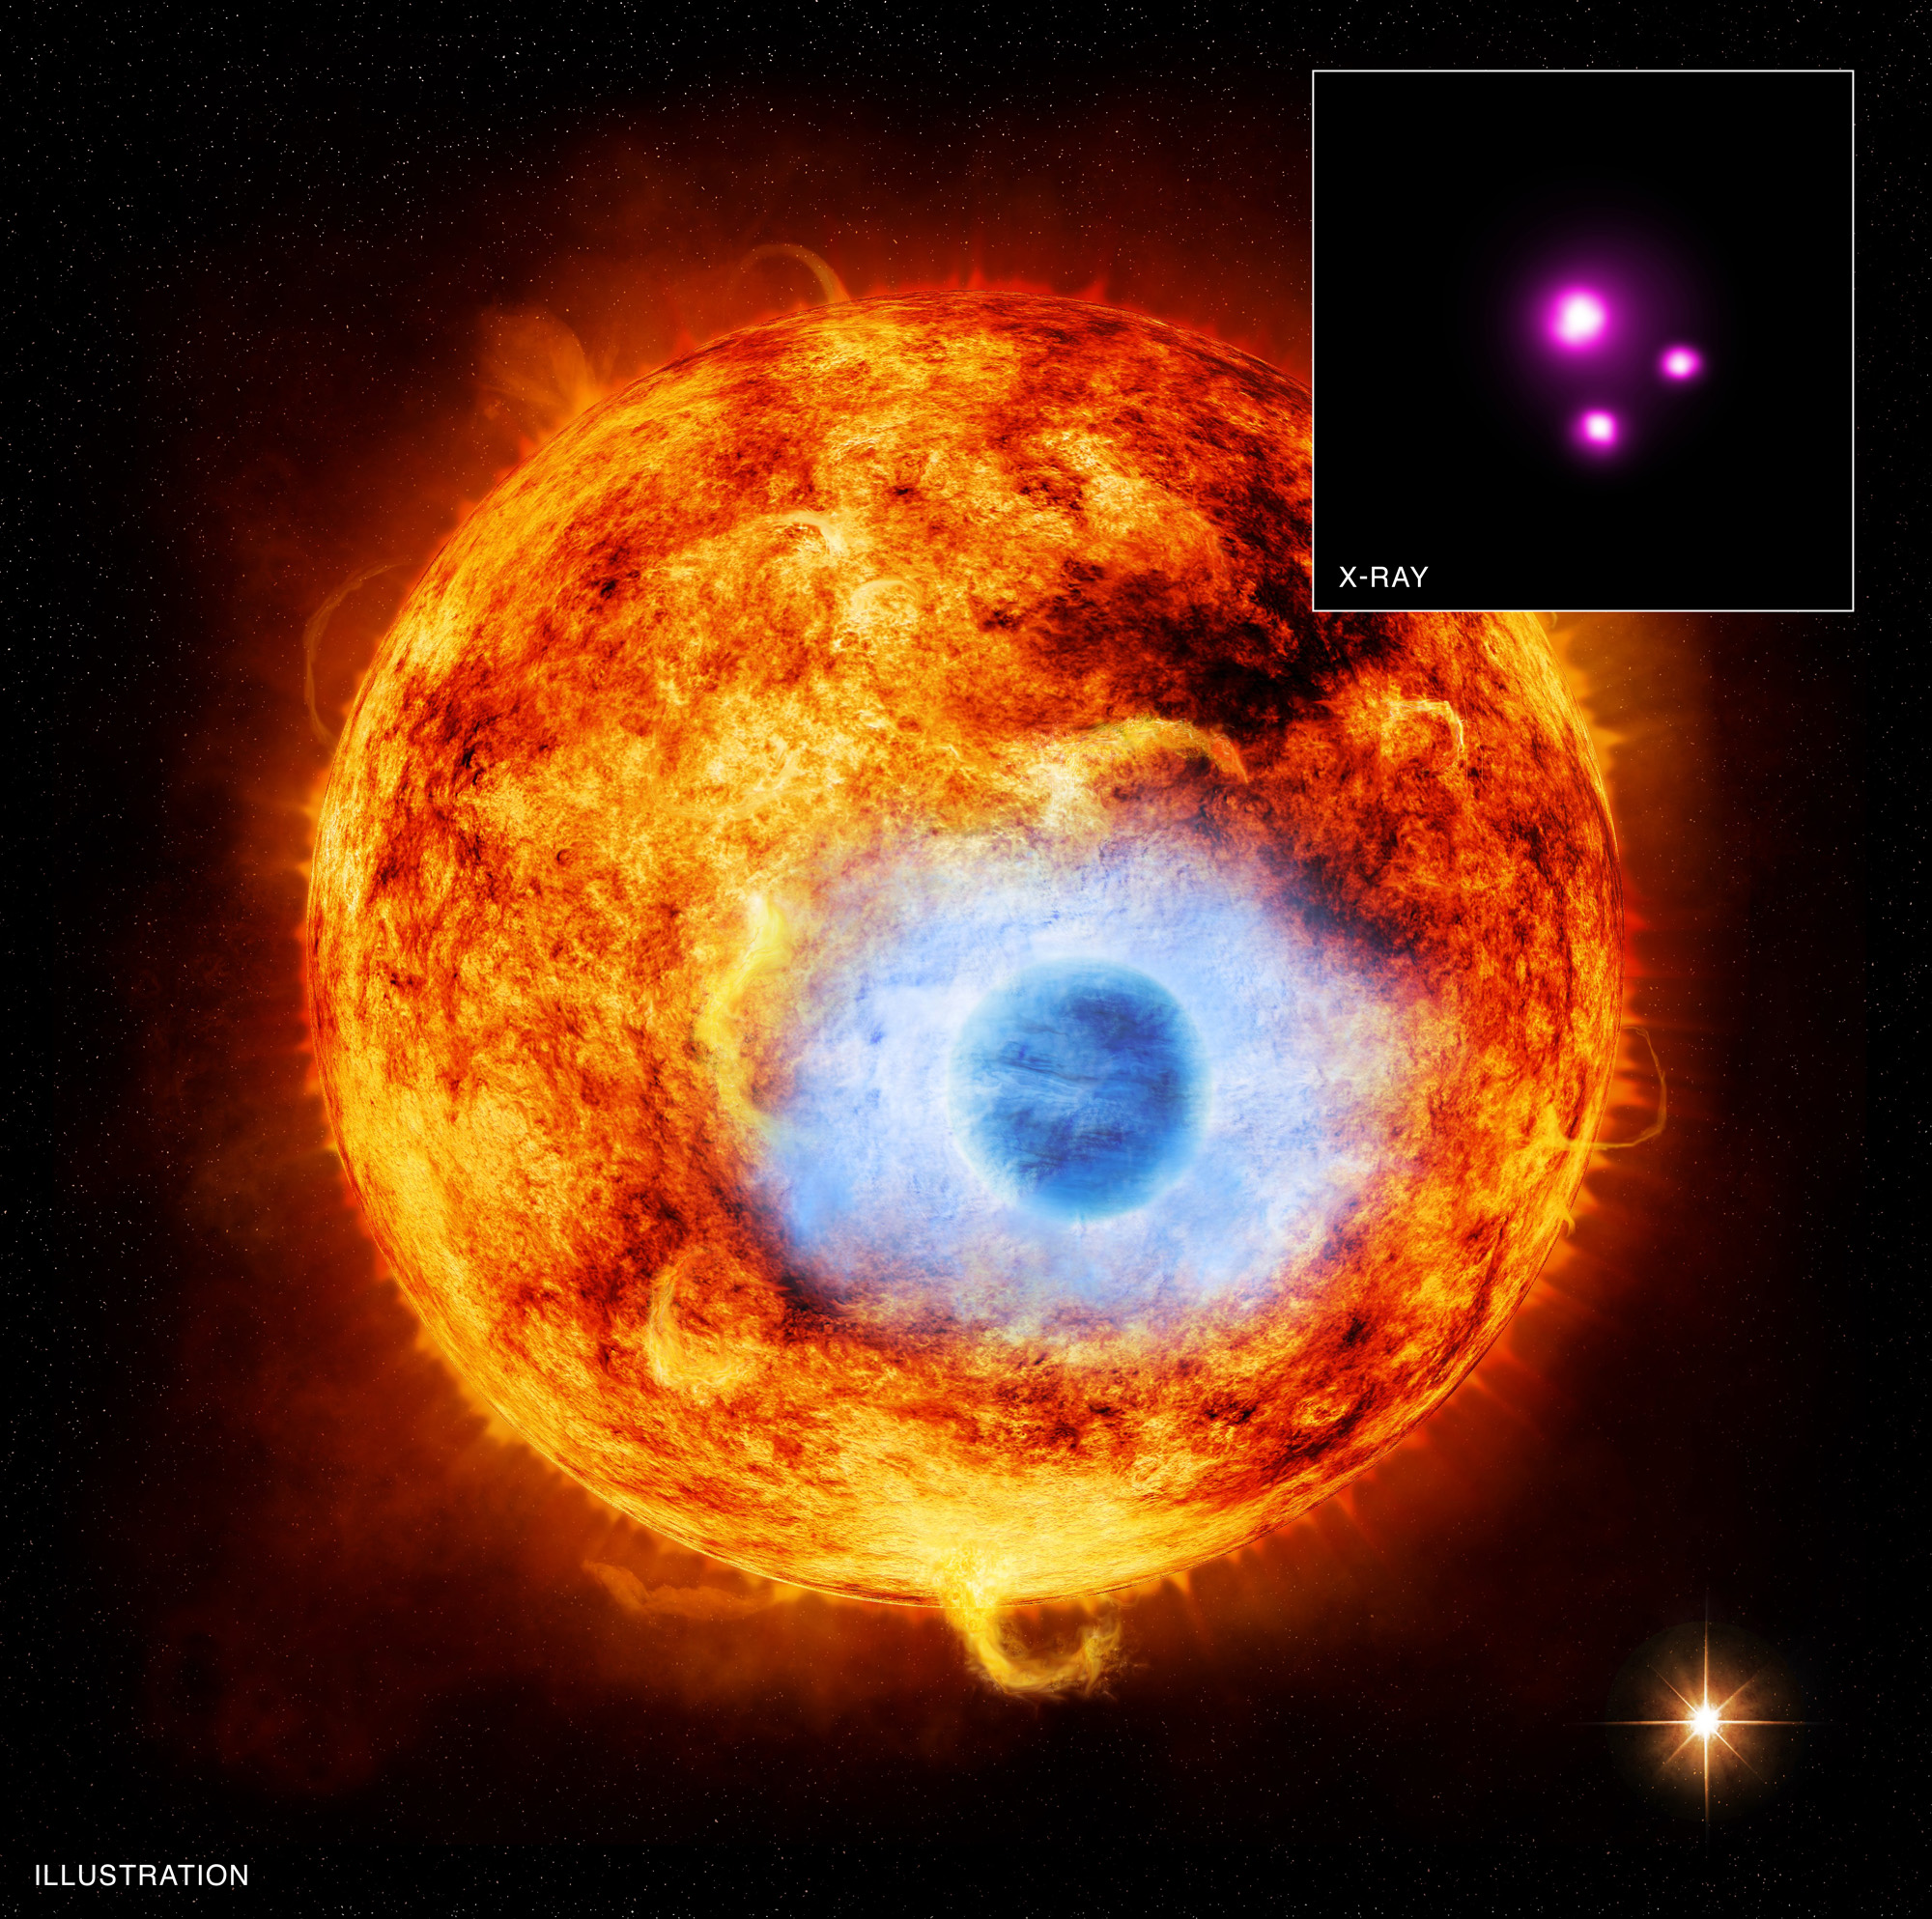 Alien Planet Eclipse Seen In X-Ray Light: A Cosmic First